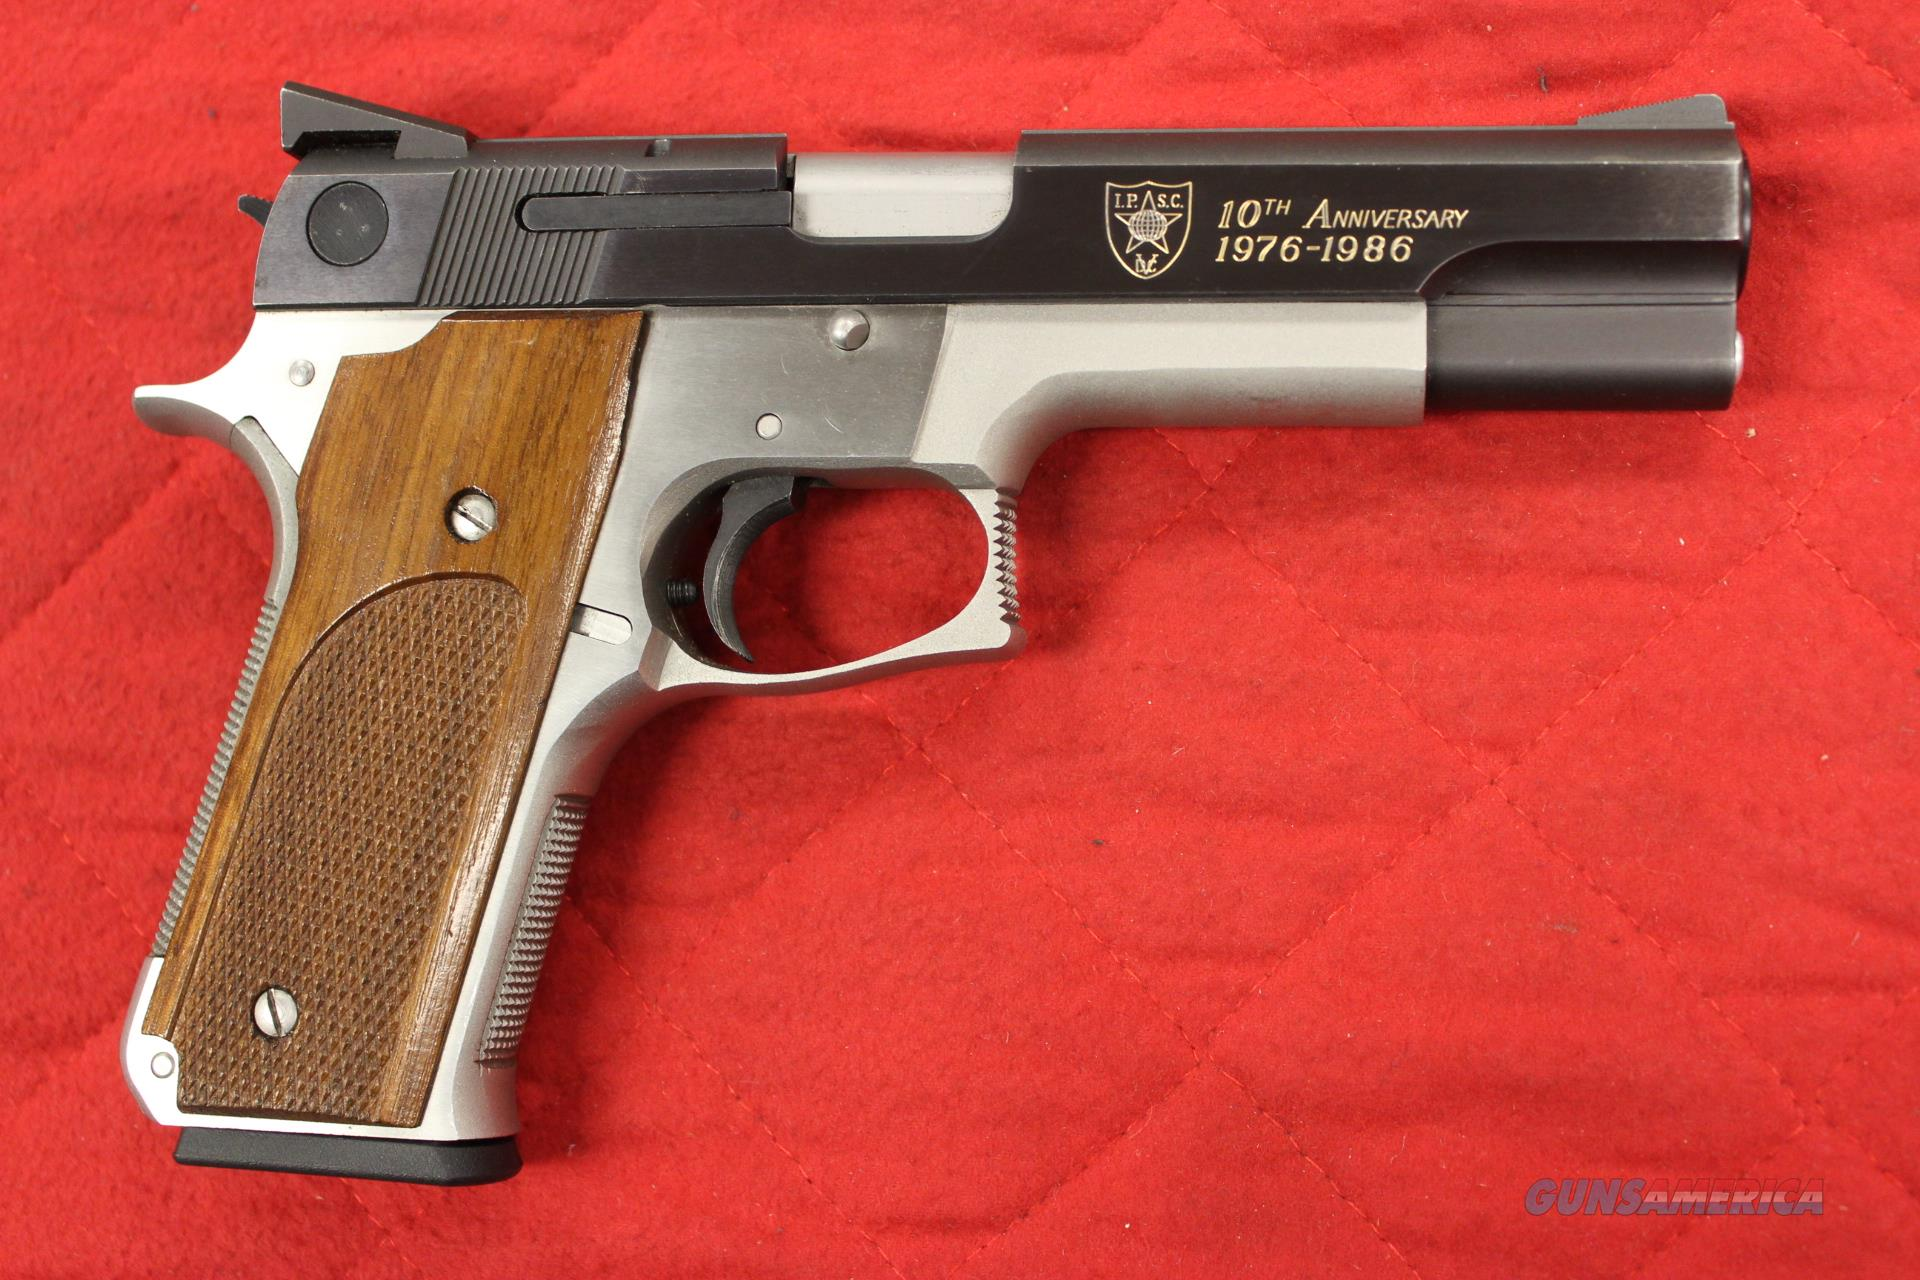 Smith and Wesson Model 745 IPSC 10th Anniversary 45 acp  Guns > Pistols > Smith & Wesson Pistols - Autos > Steel Frame